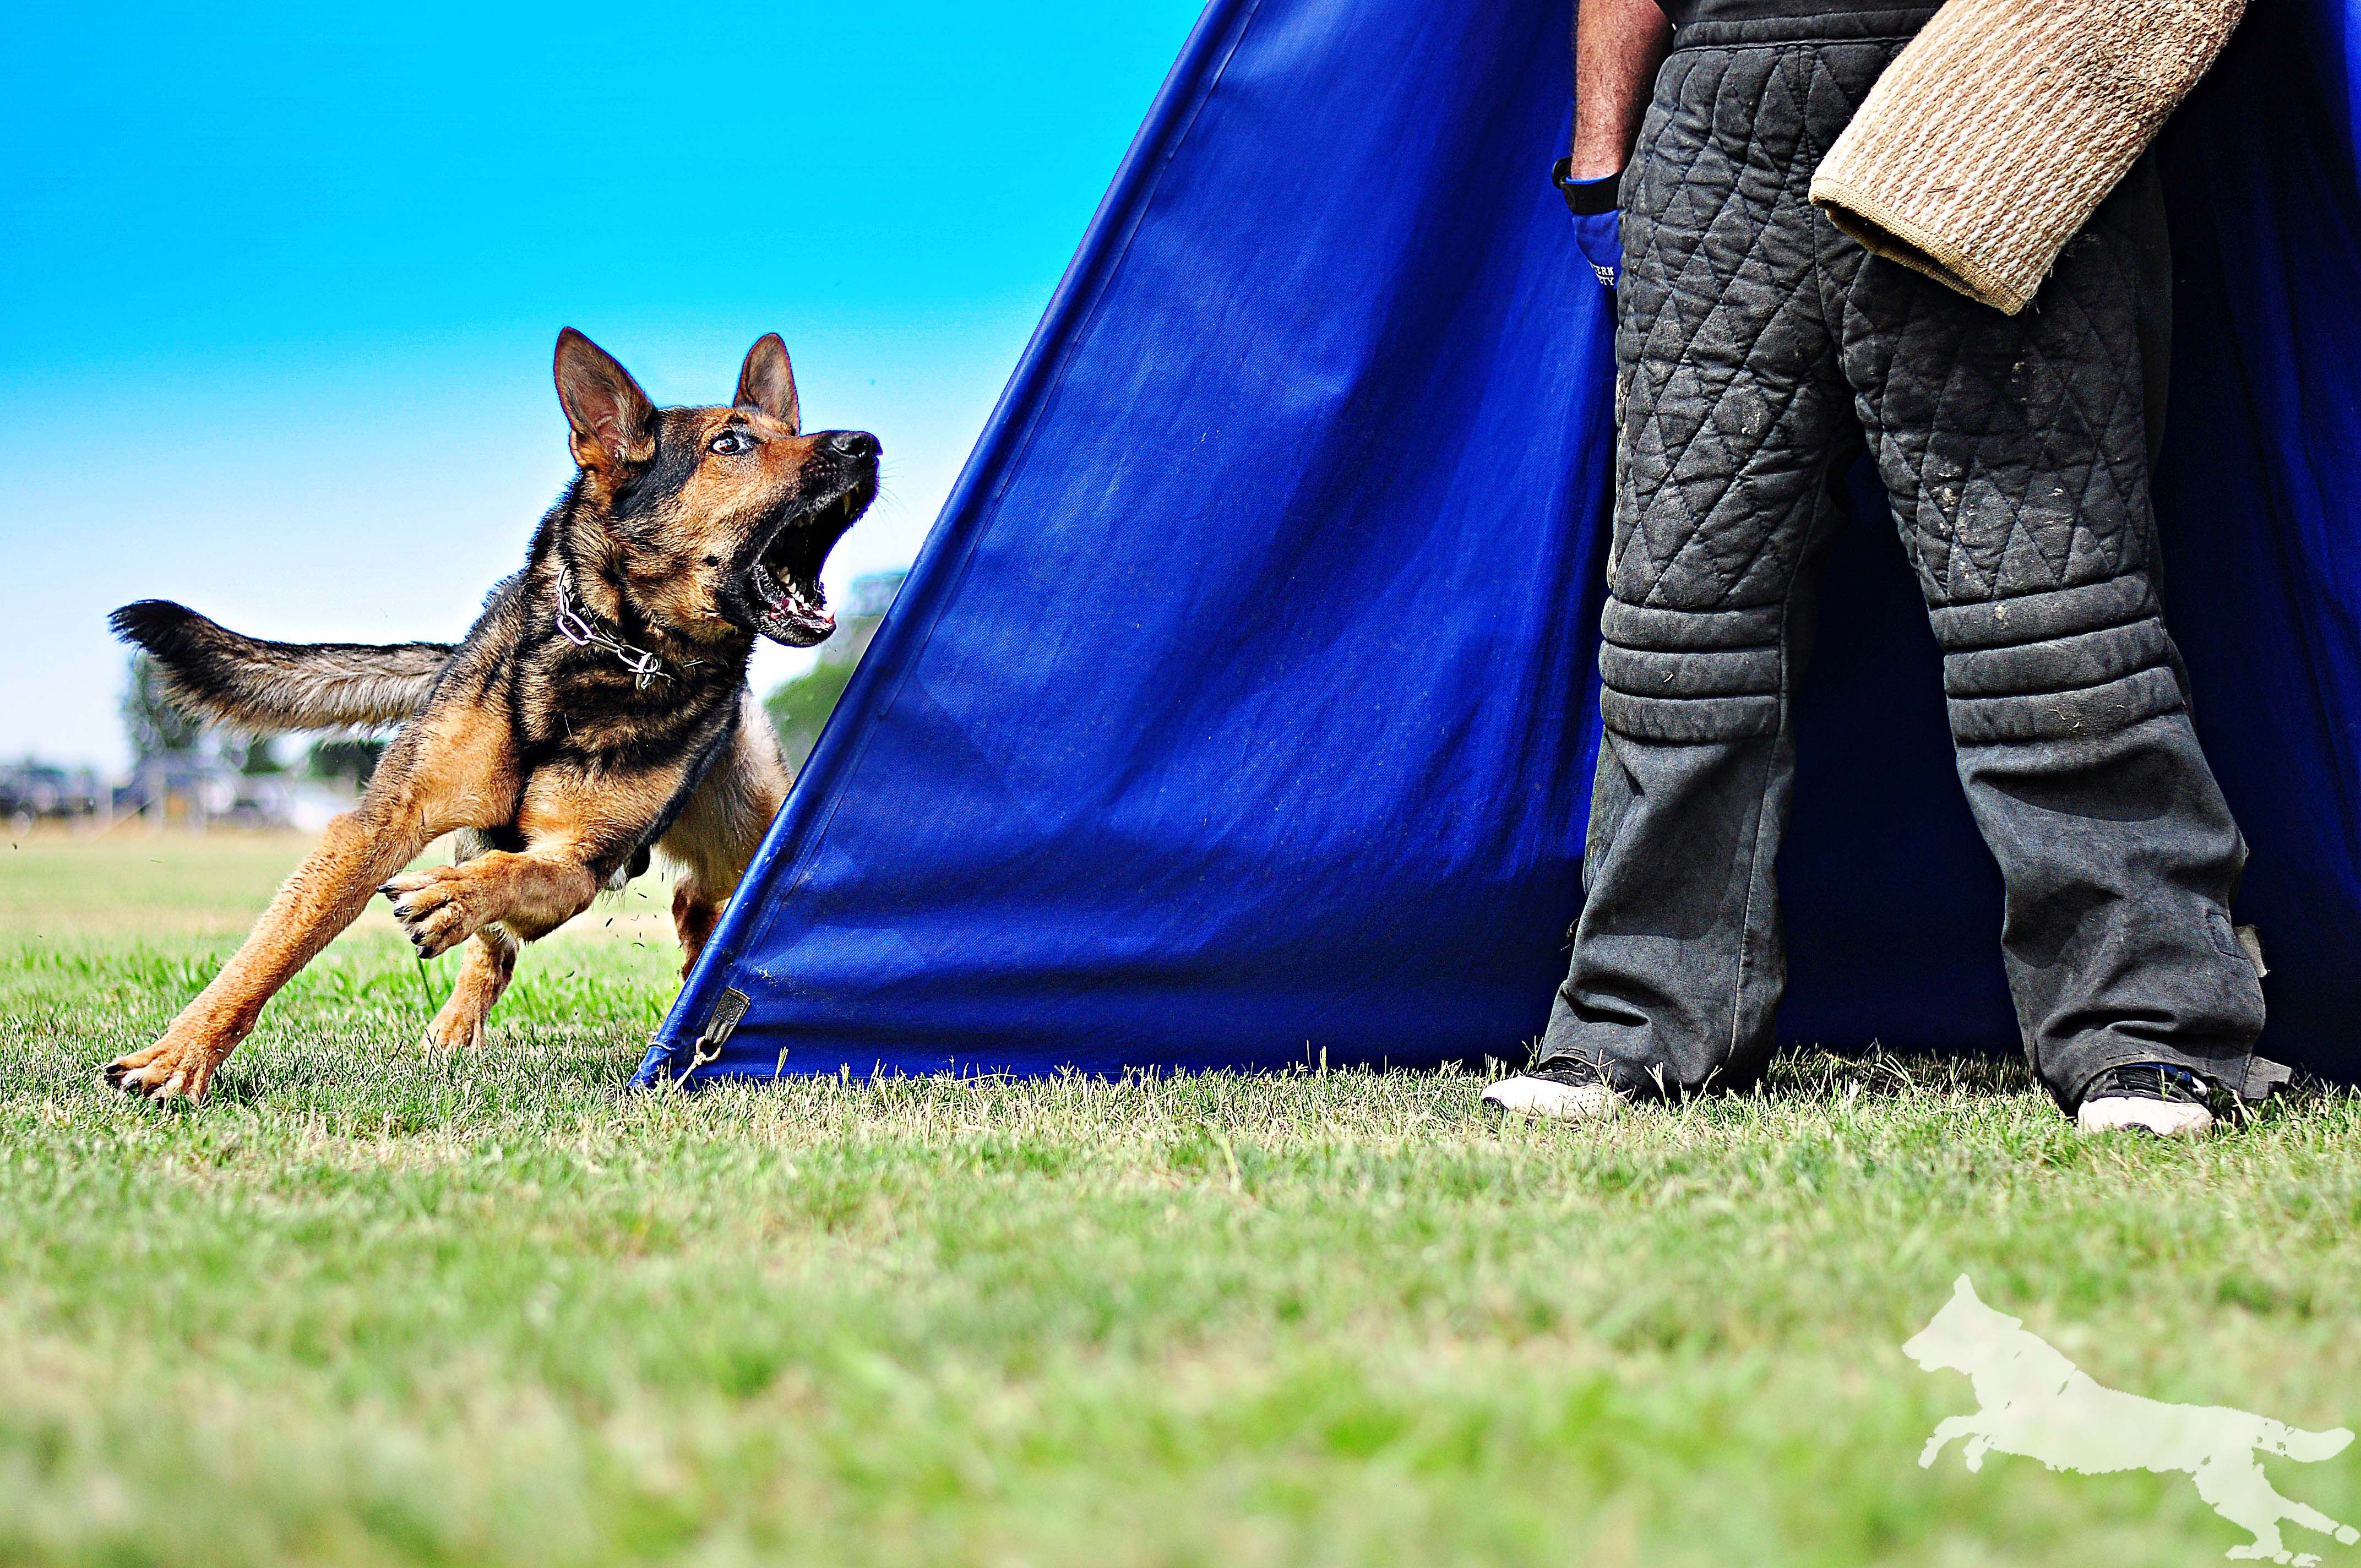 Pin by Beth McDougald on Schutzhund GSD/Working and